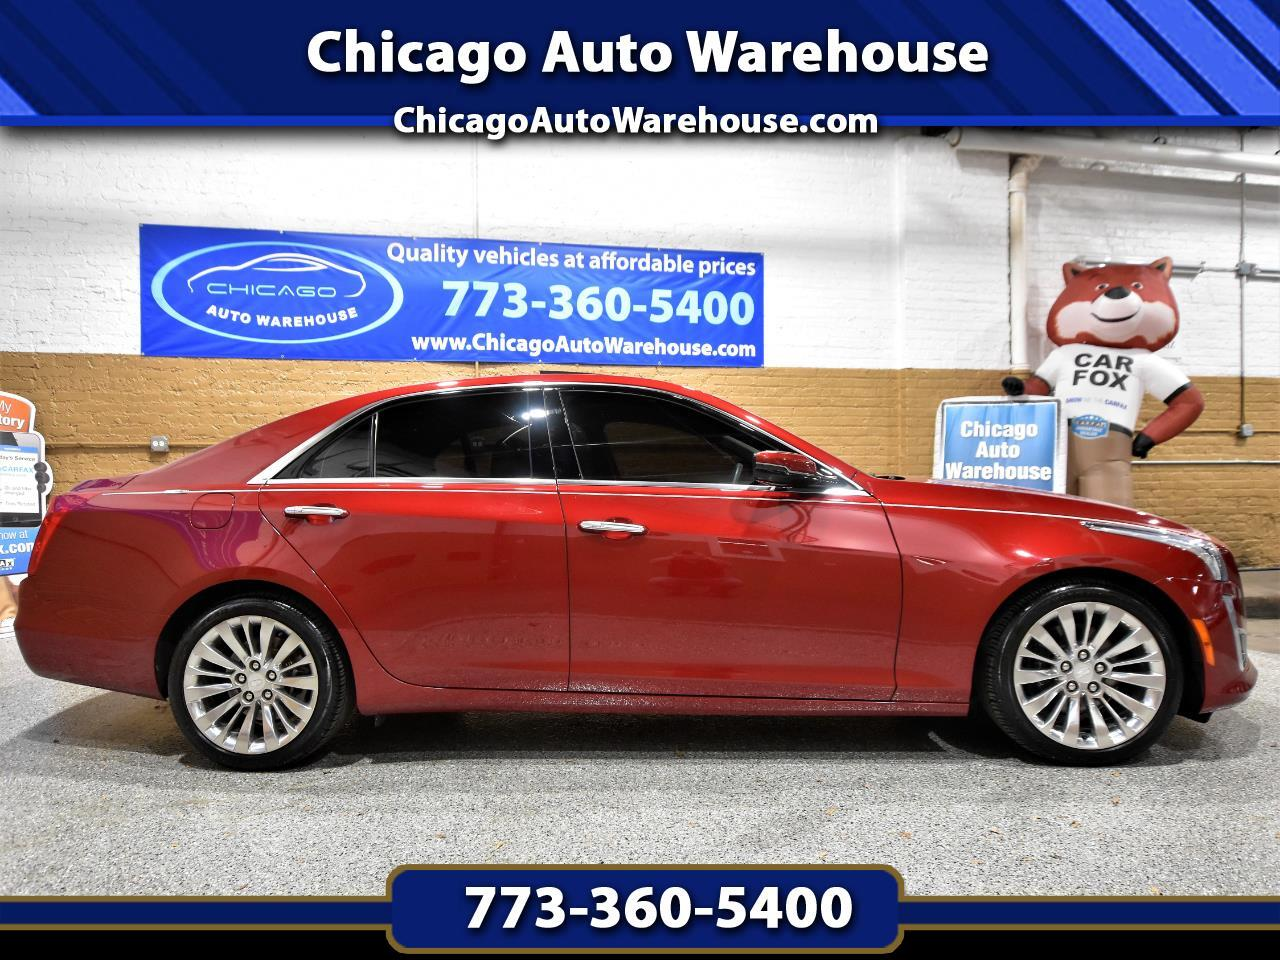 Cadillac CTS Sedan 4dr Sdn 2.0L Turbo Performance AWD 2015